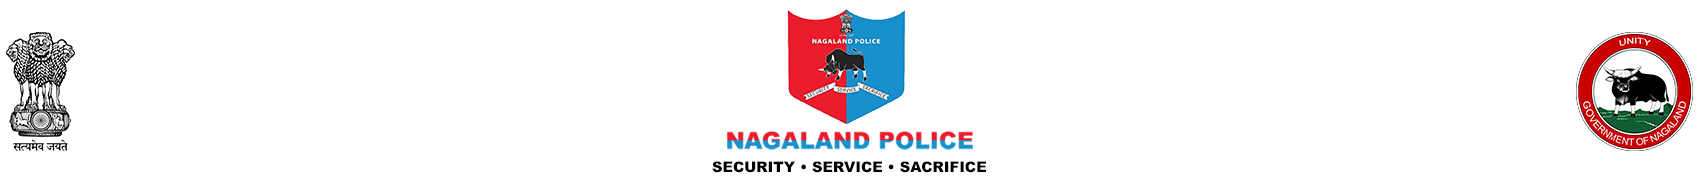 Nagaland Police Headquarters